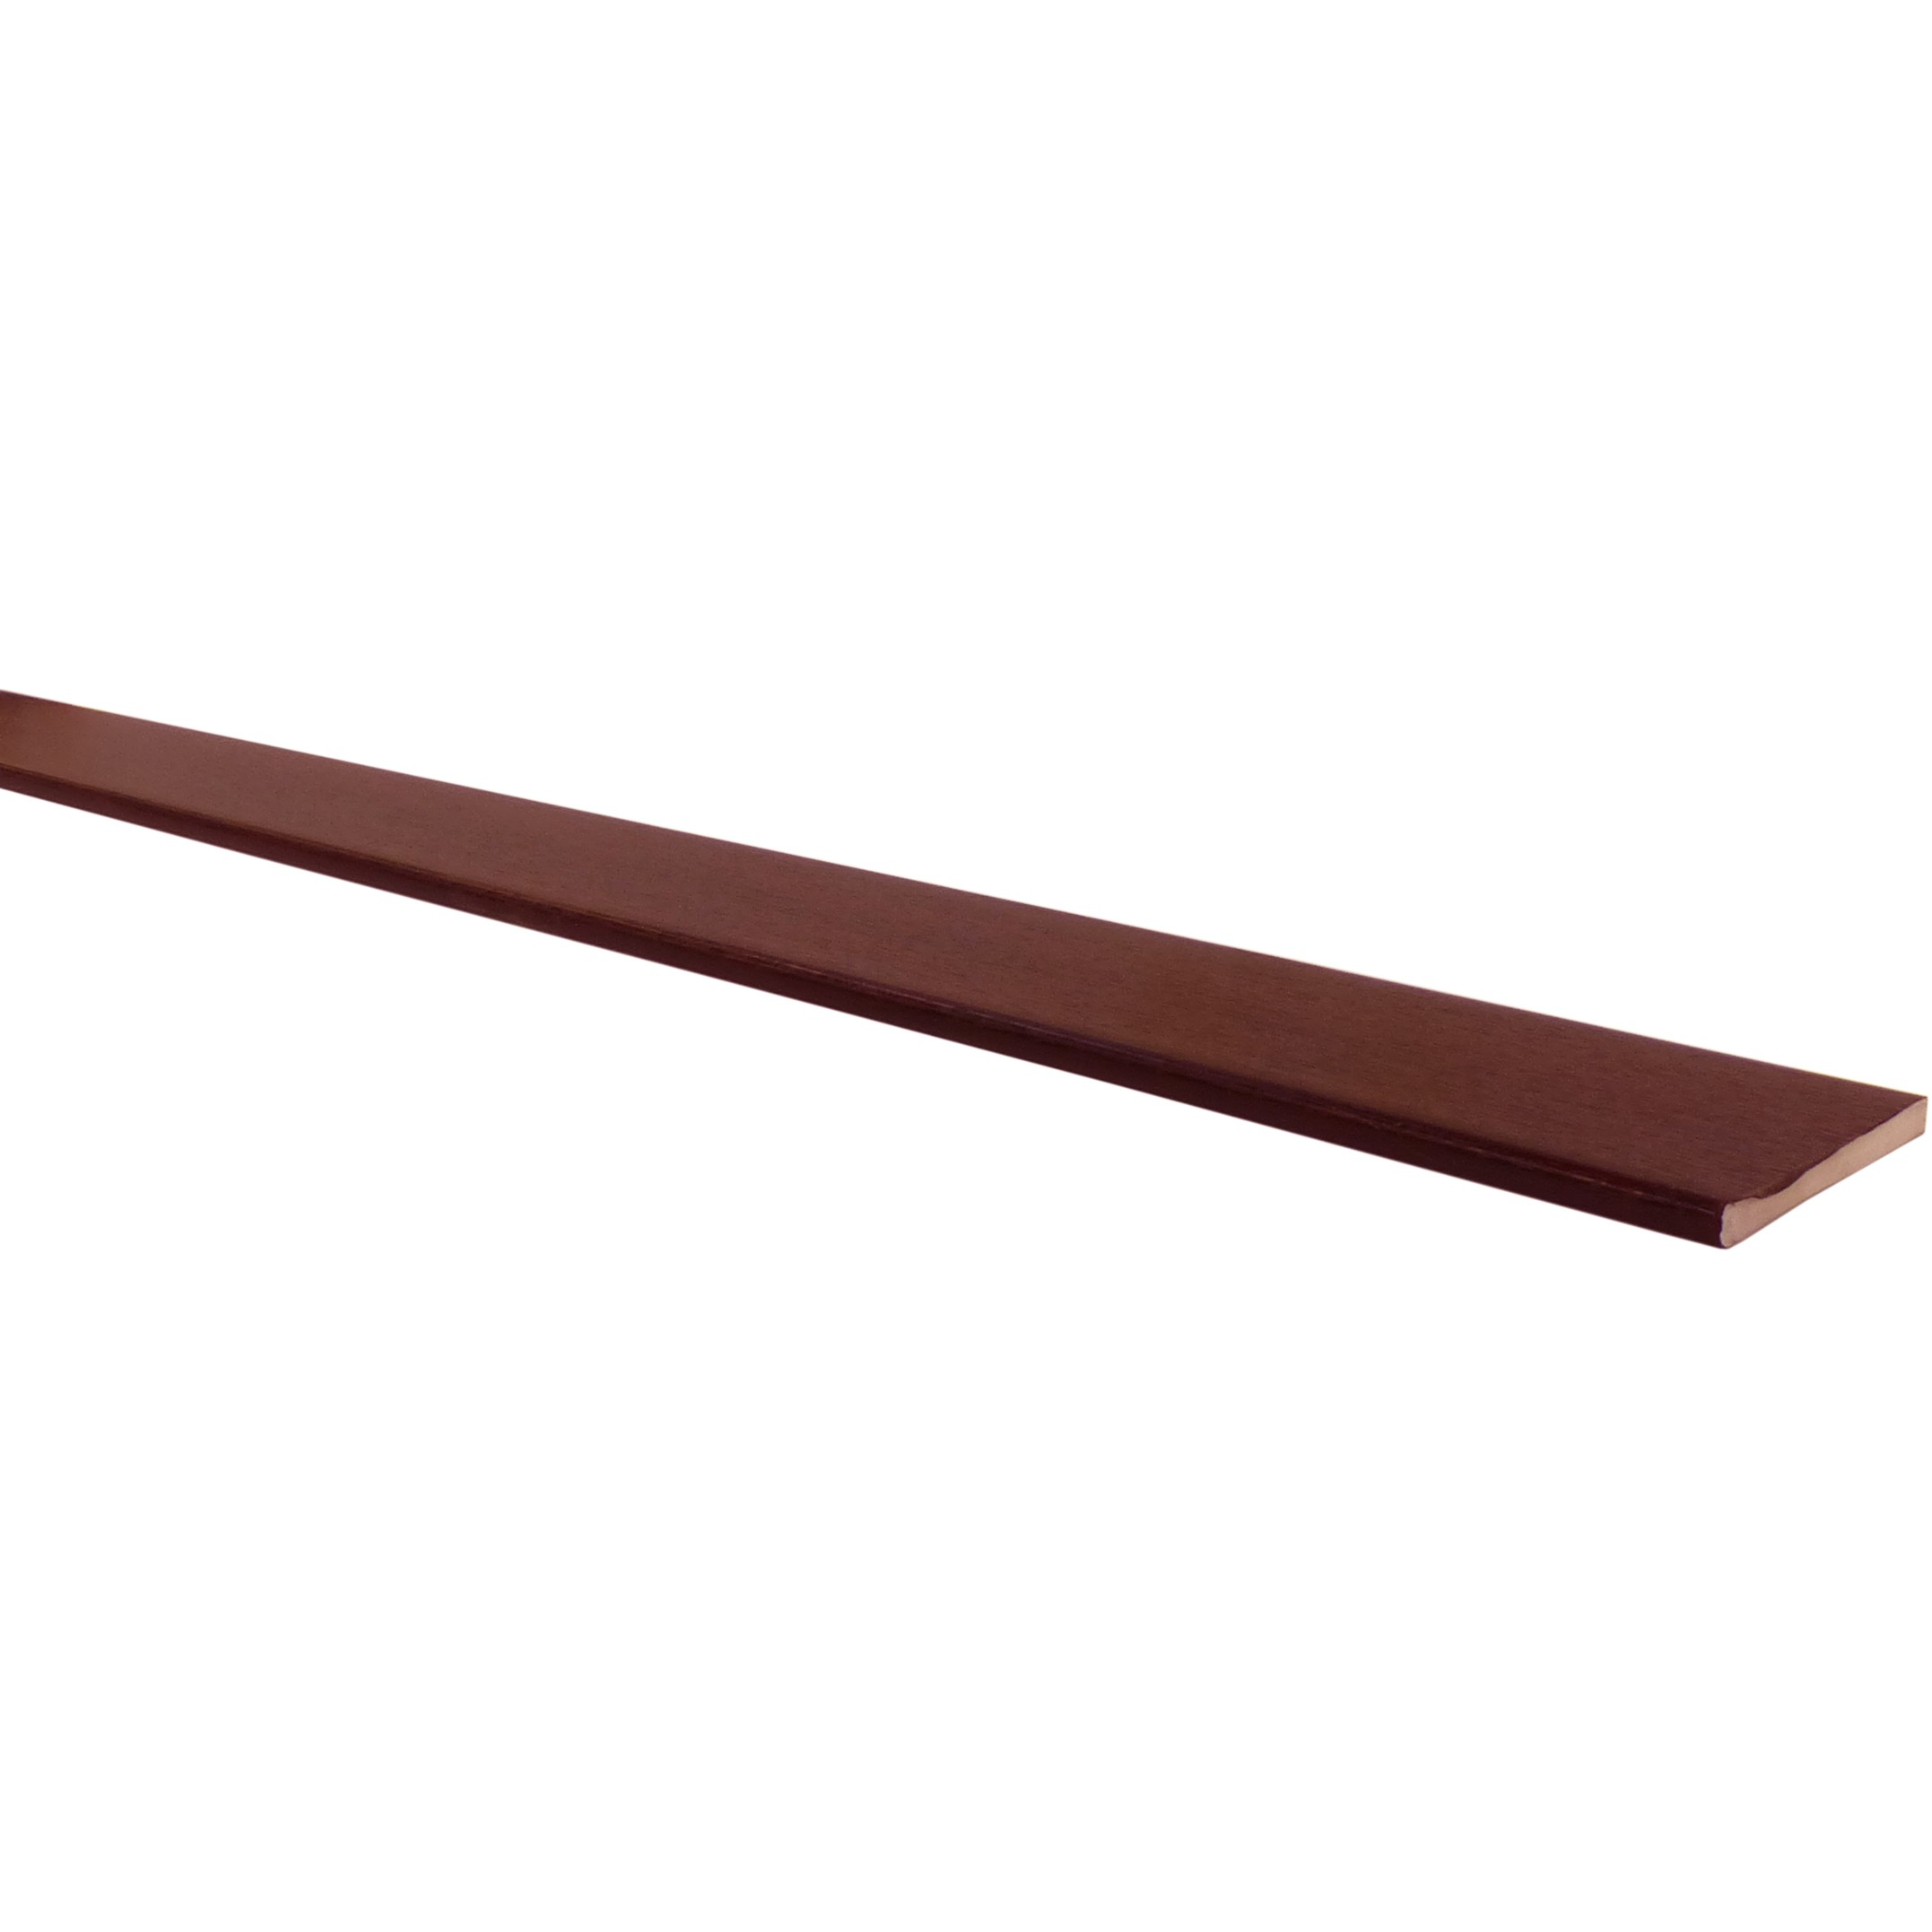 Freefoam 10mm Solid Soffit Board - Woodgrain Rosewood, 200mm, 5 metre